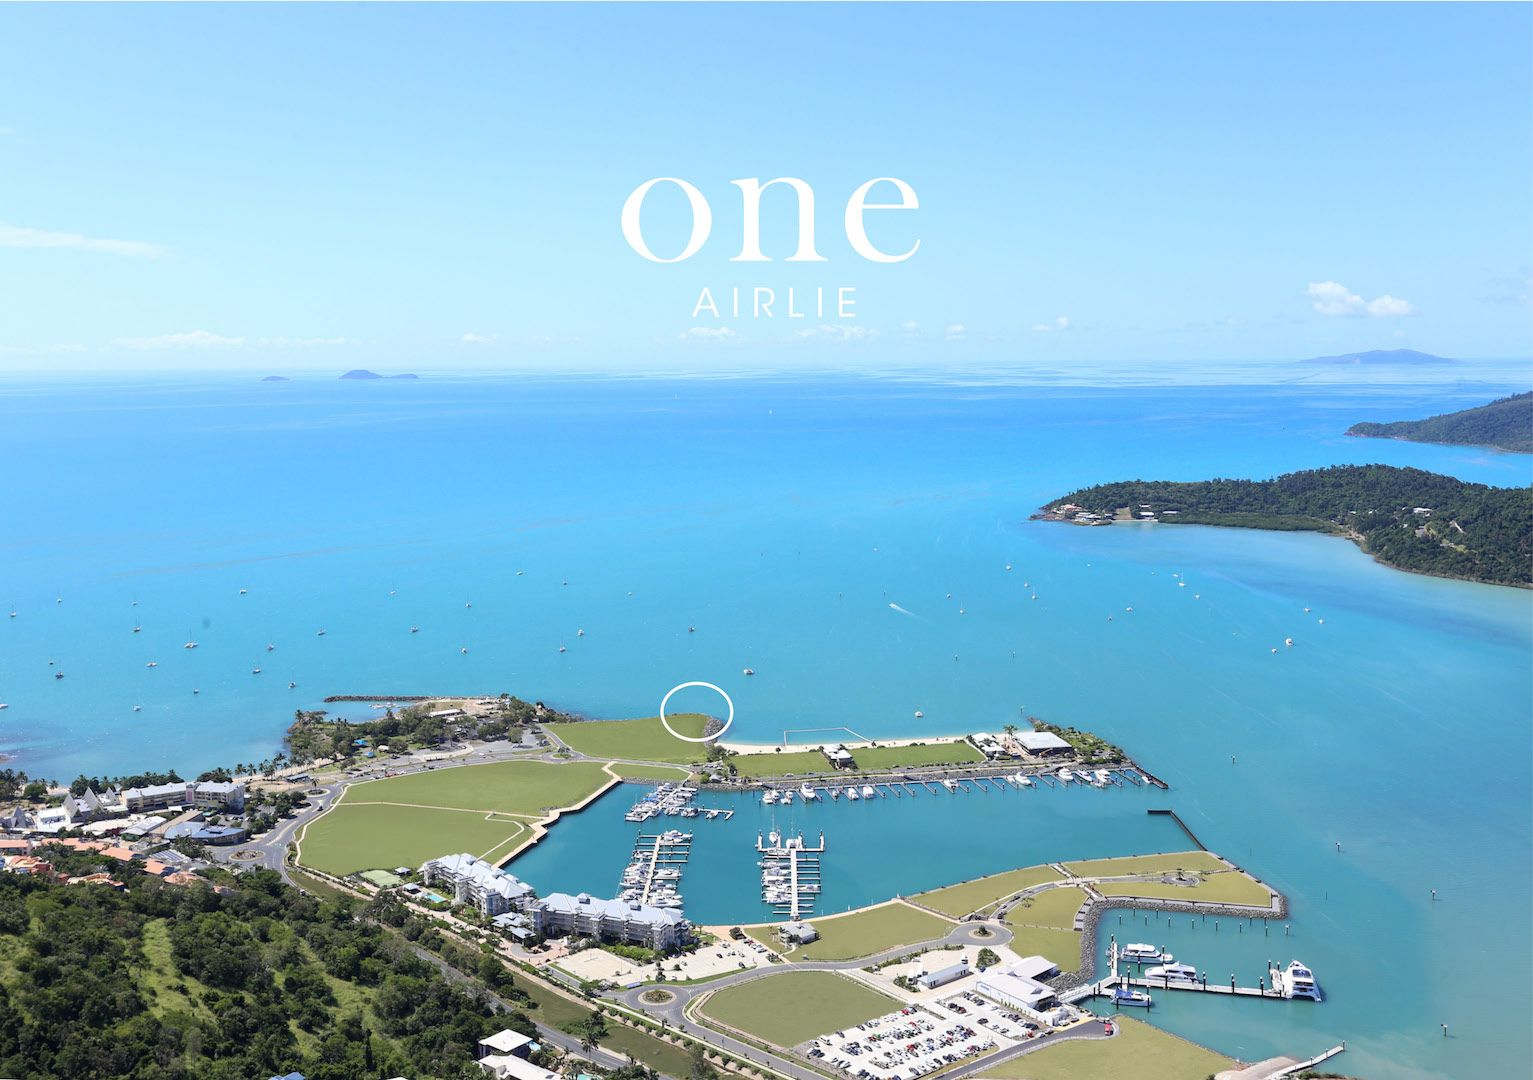 Terrain / Lots pour l Vente à One Airlie - An unrepeatable opportunity to create a luxury Whitsundays residence Airlie Beach, Queensland,4802 Australie